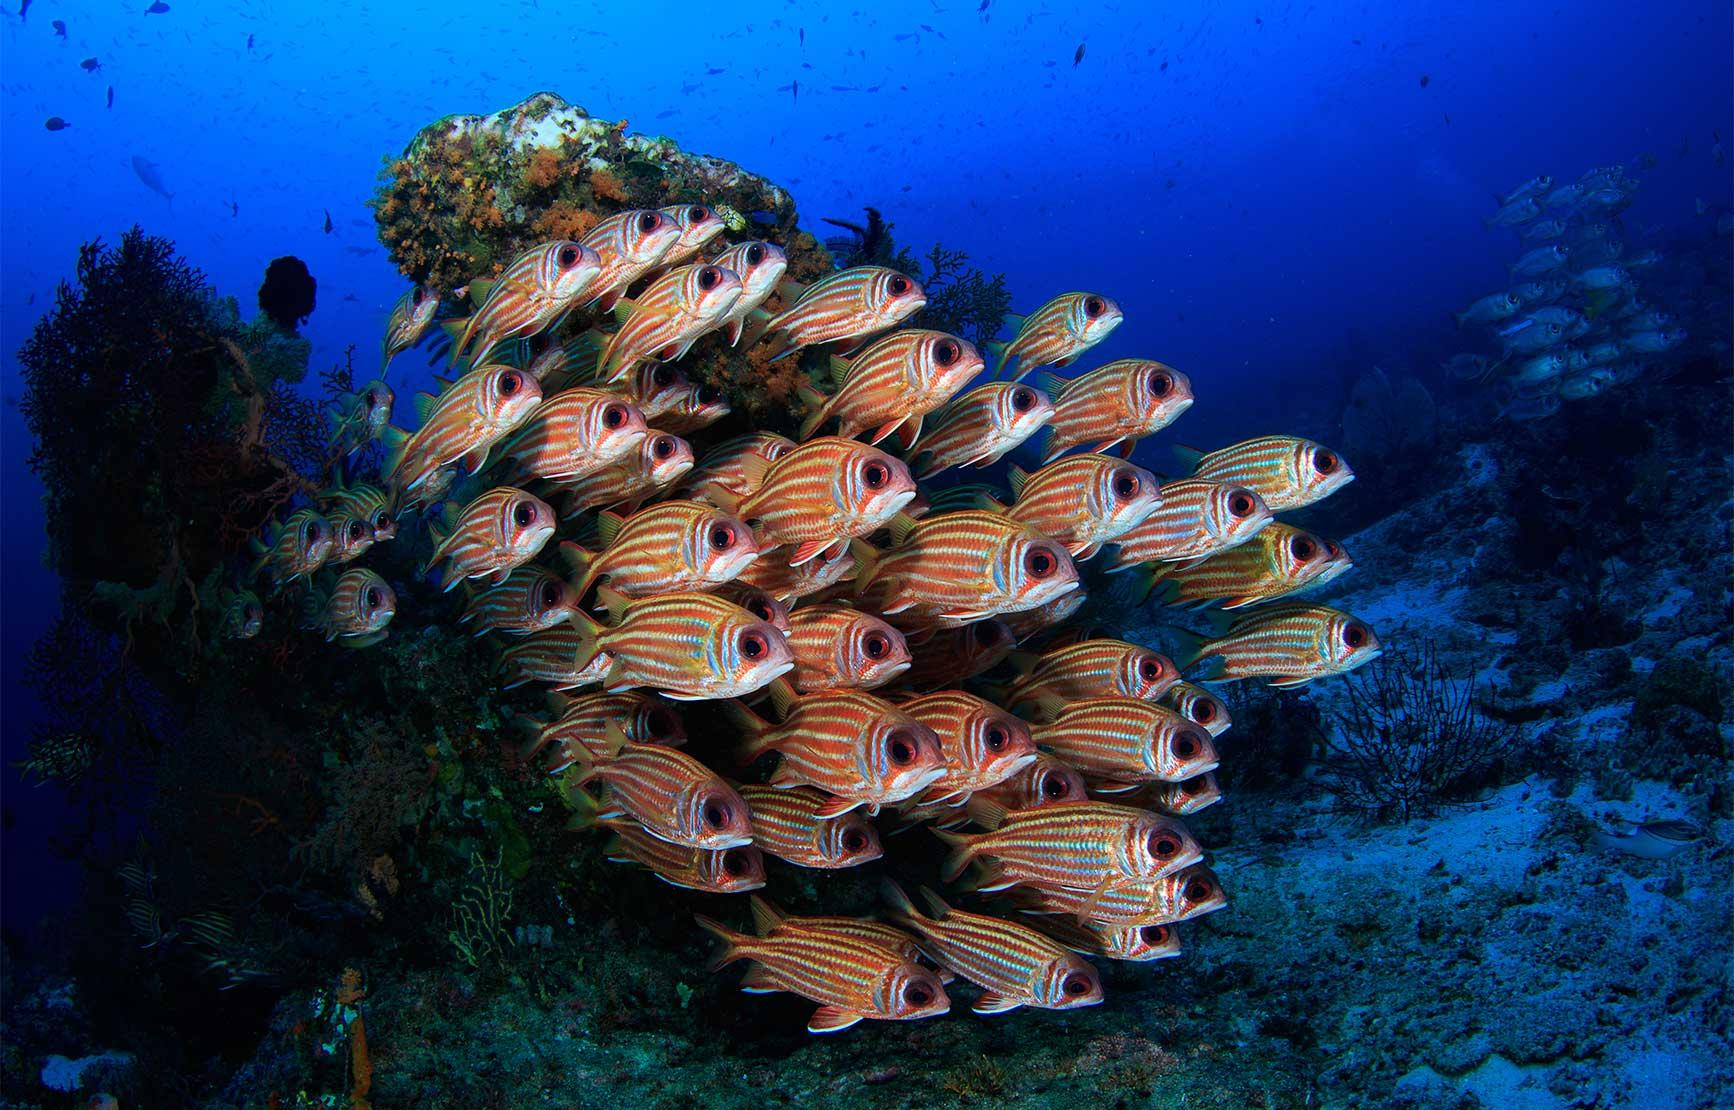 school of fish swimming near ocean floor